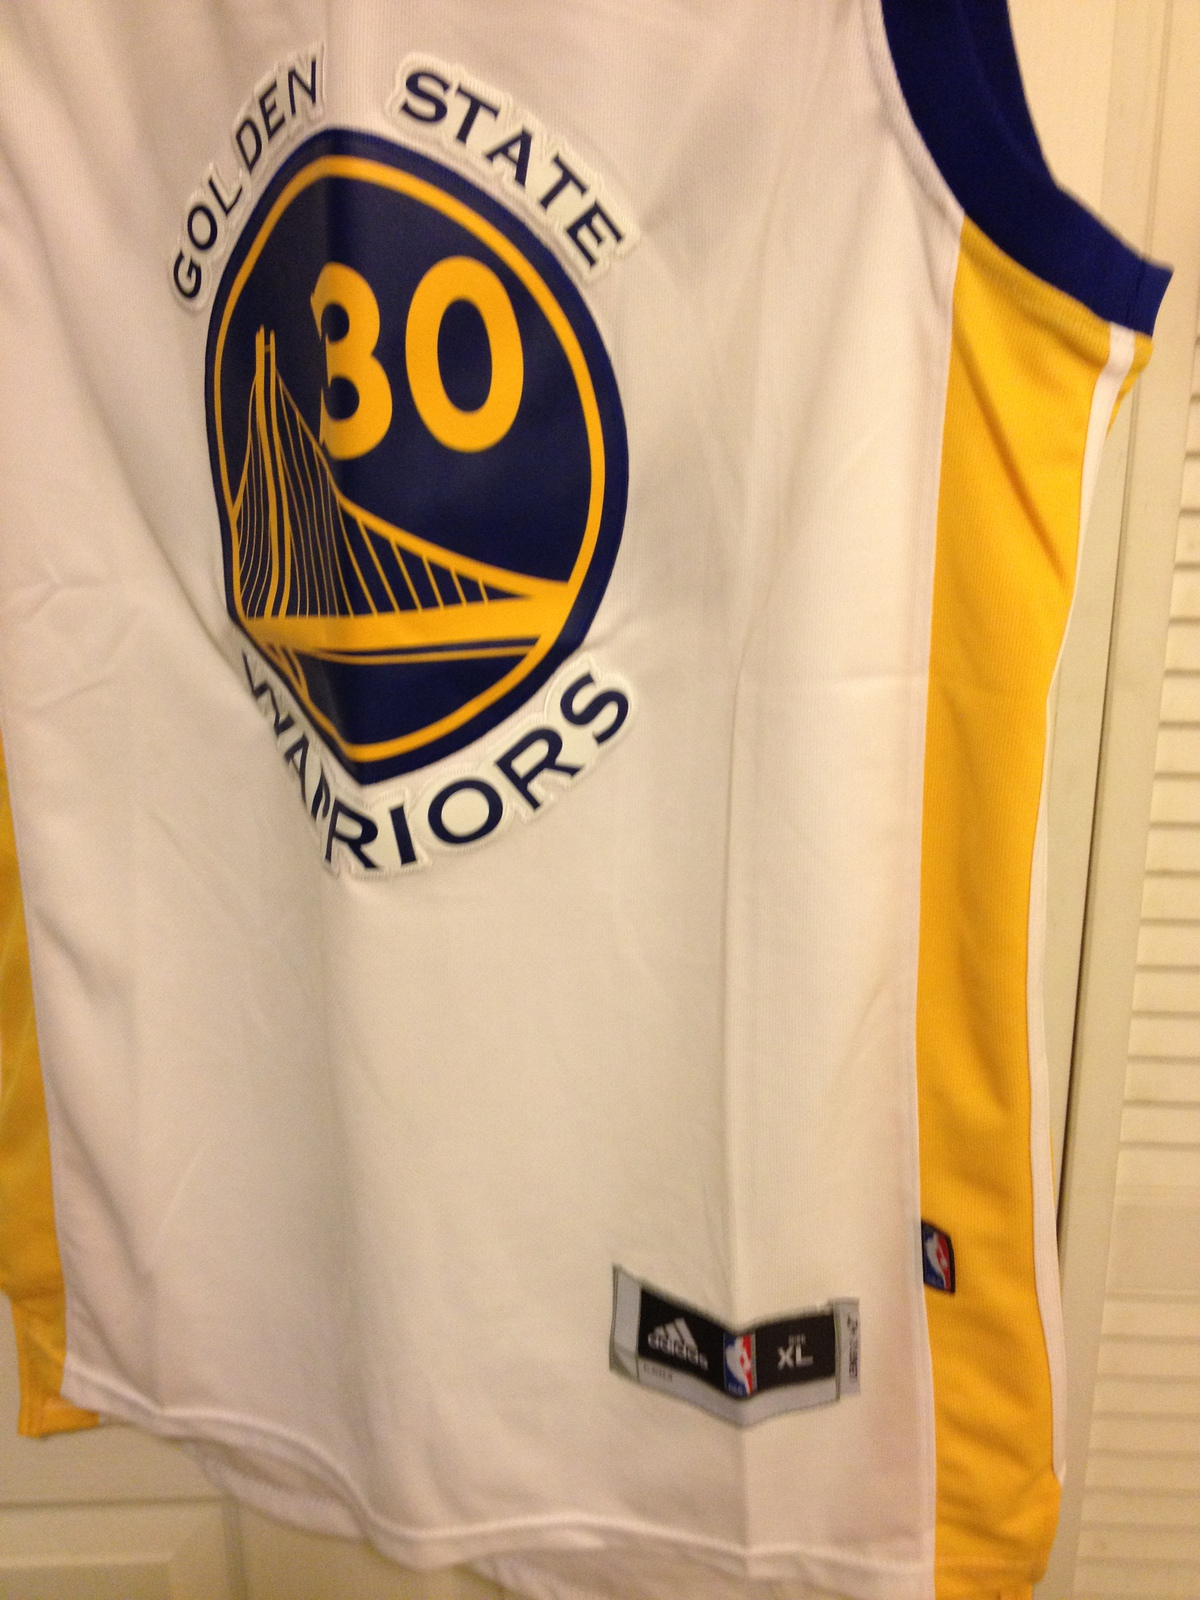 Stephen Curry Adidas Swingman Jersey image 3